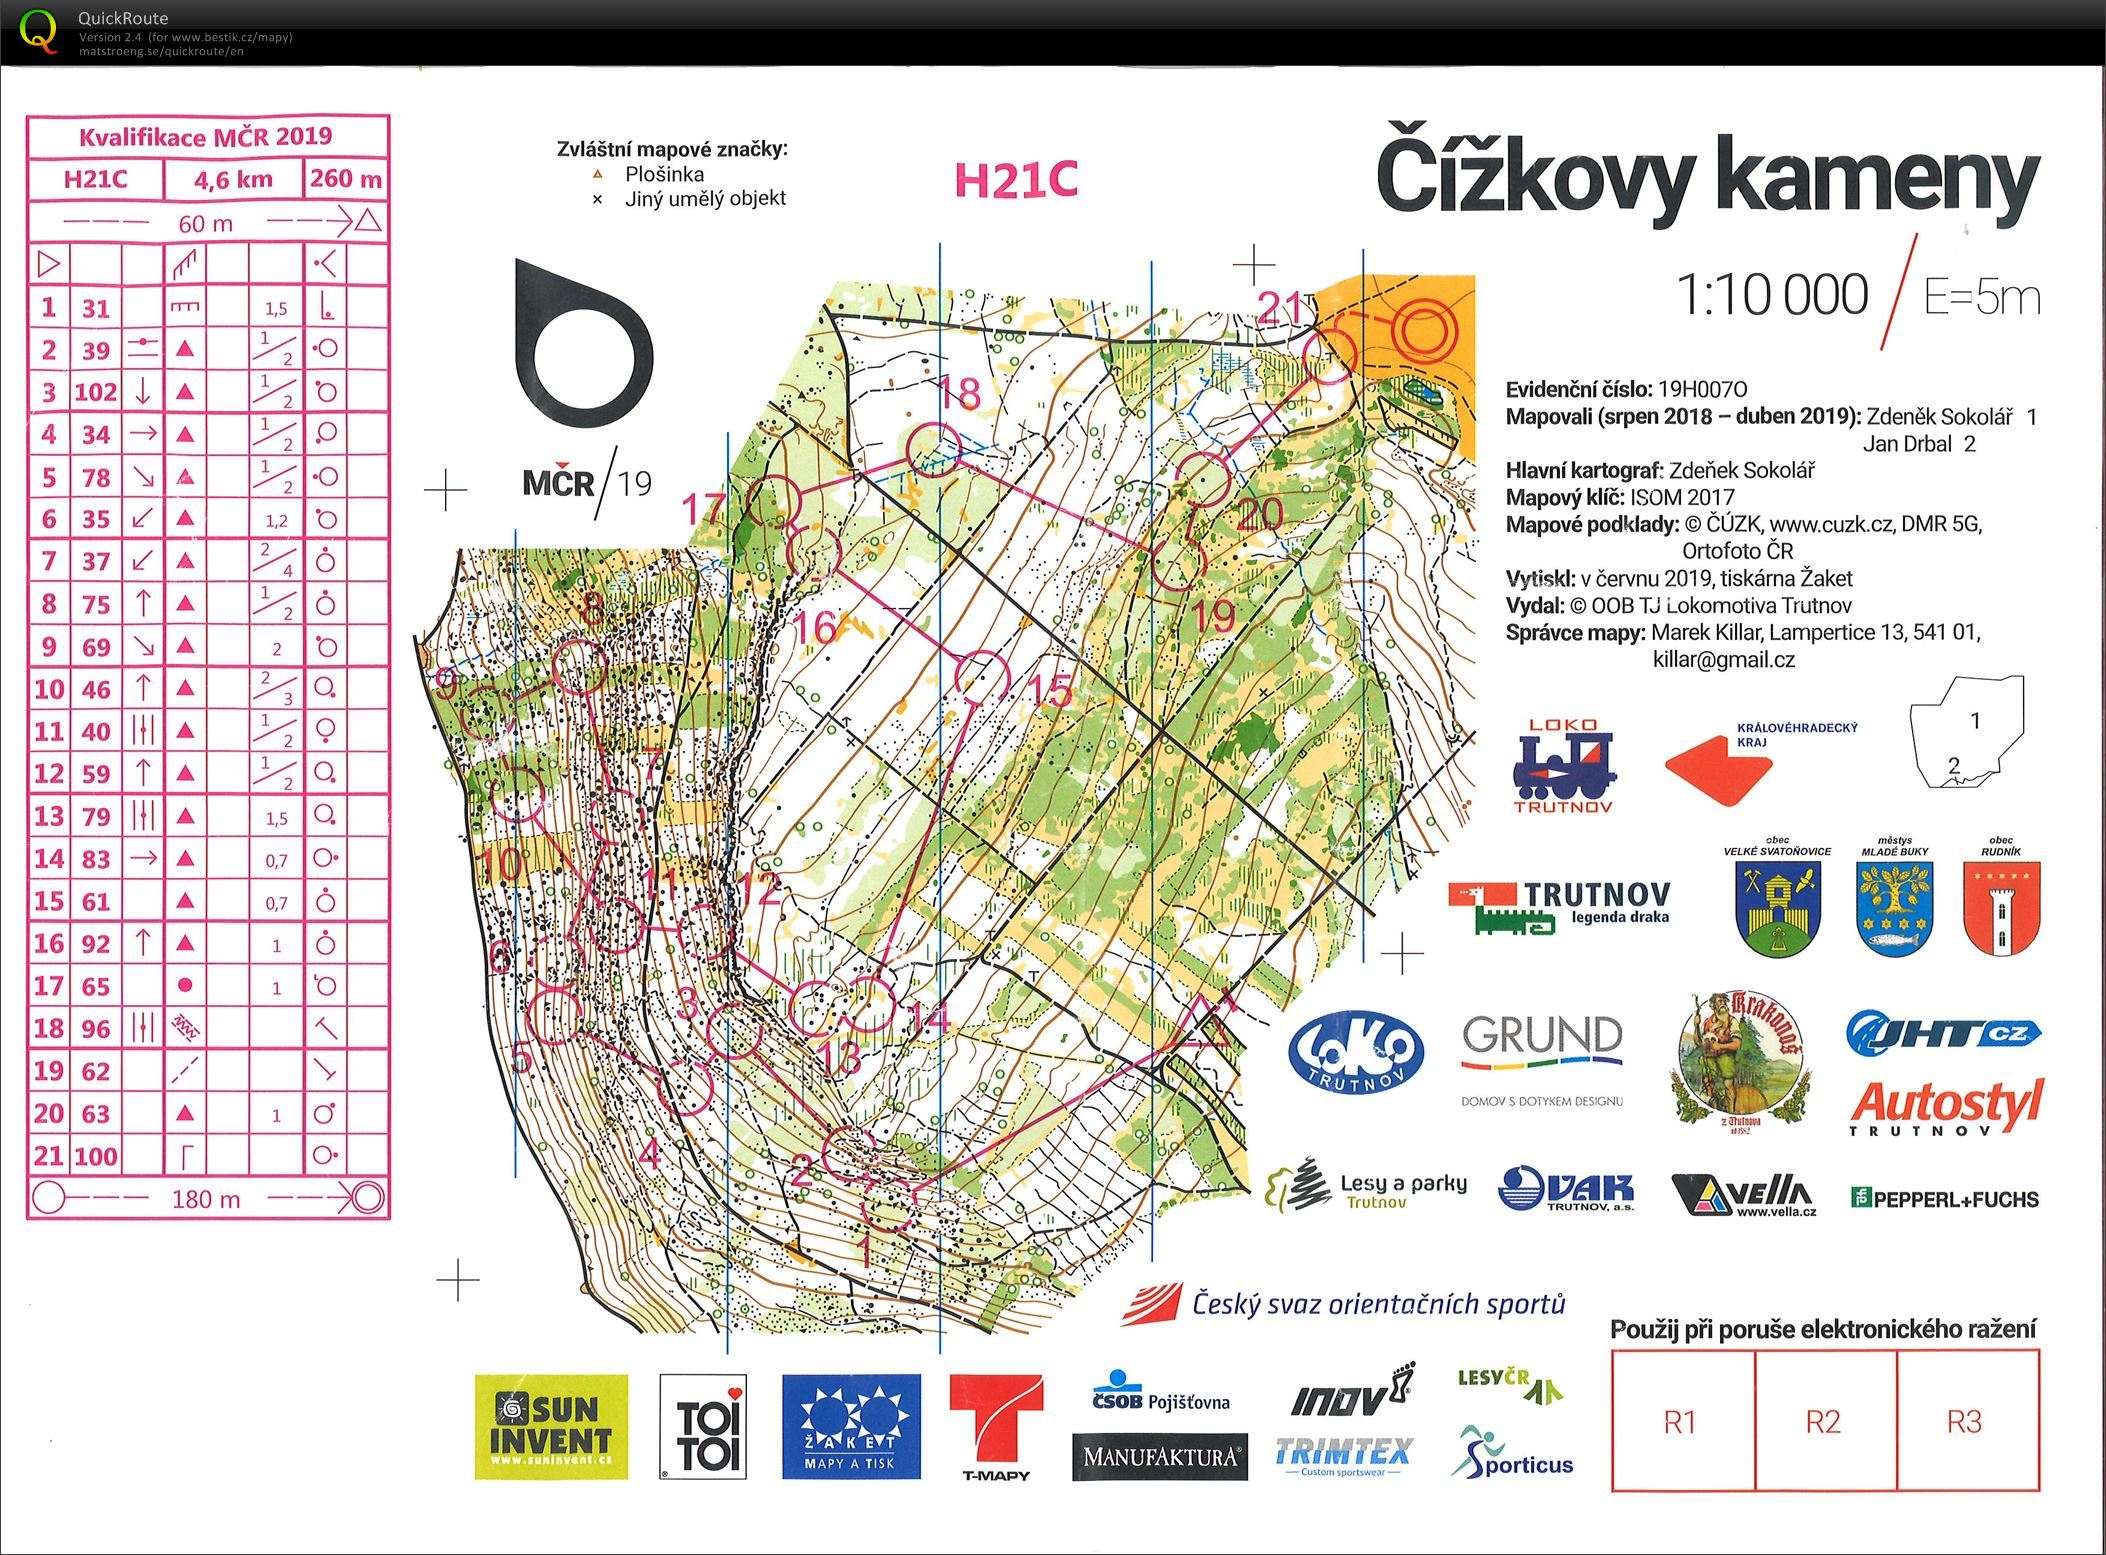 Czech Middle Champs - qual (22/06/2019)